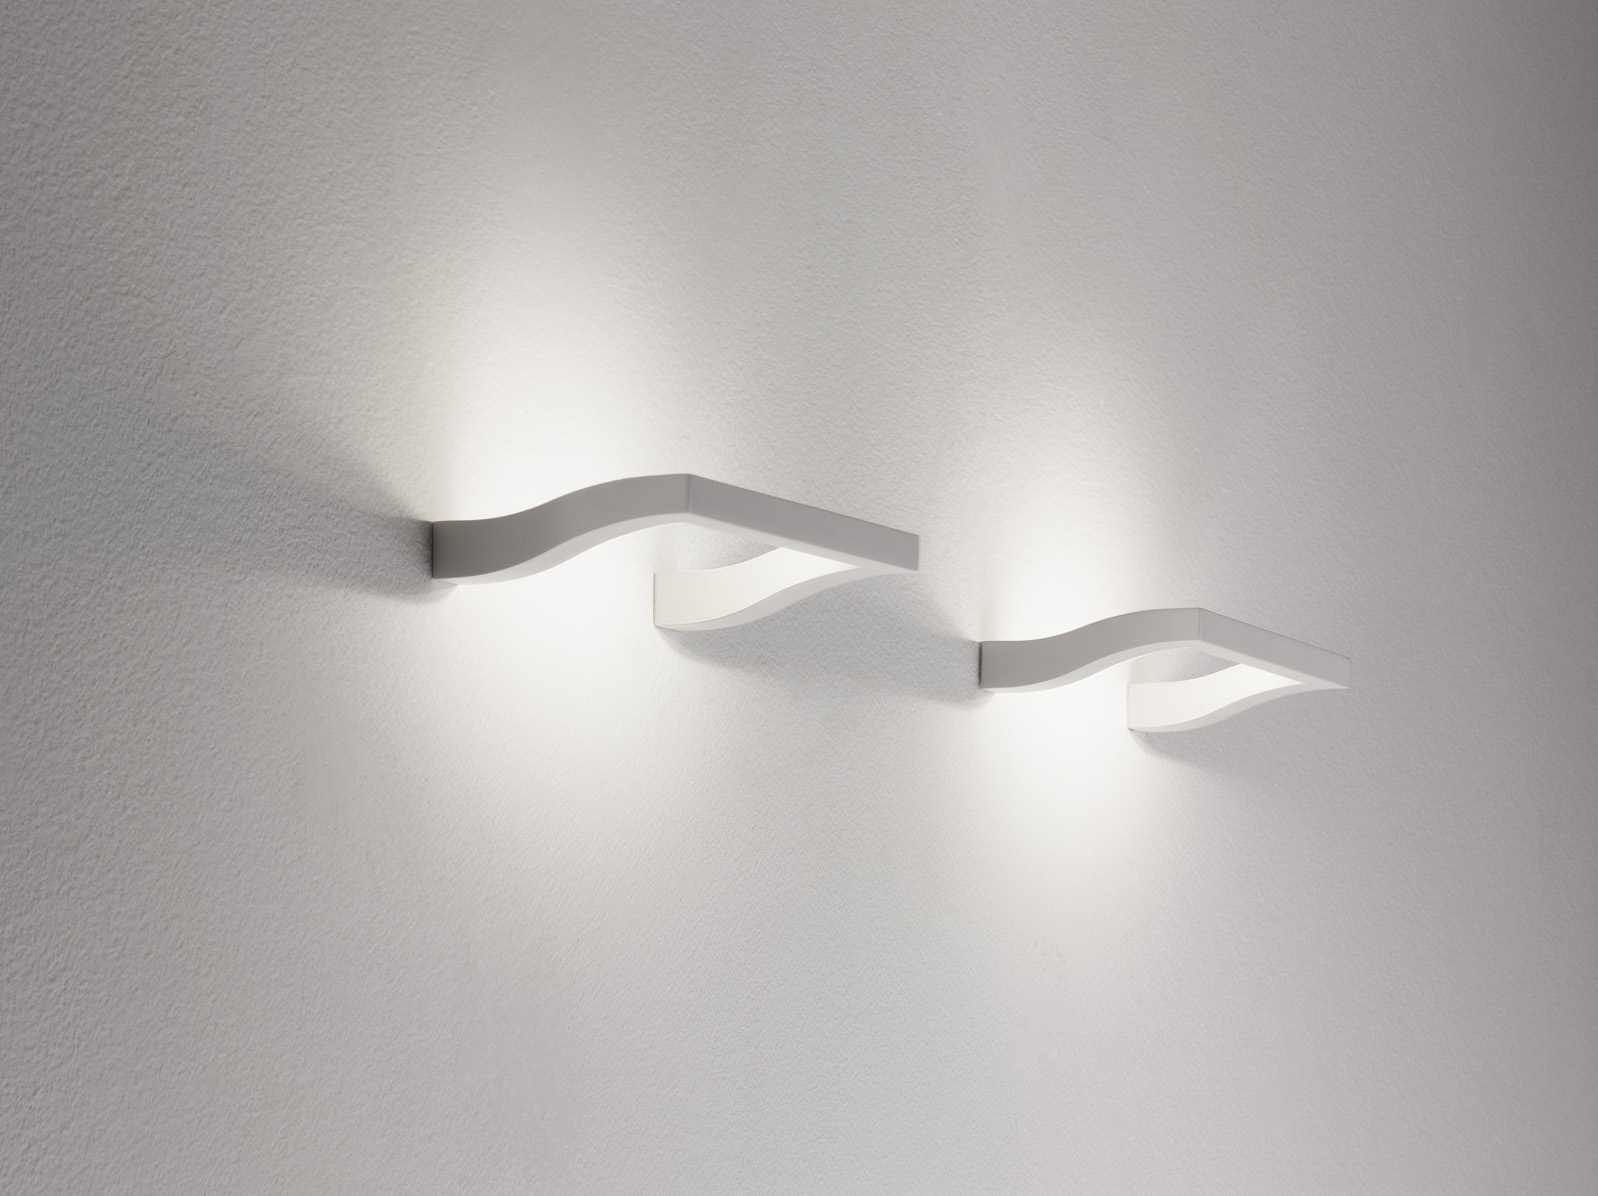 Lampada da parete a LED in alluminio CYMA by AXO LIGHT design Manuel Vivian